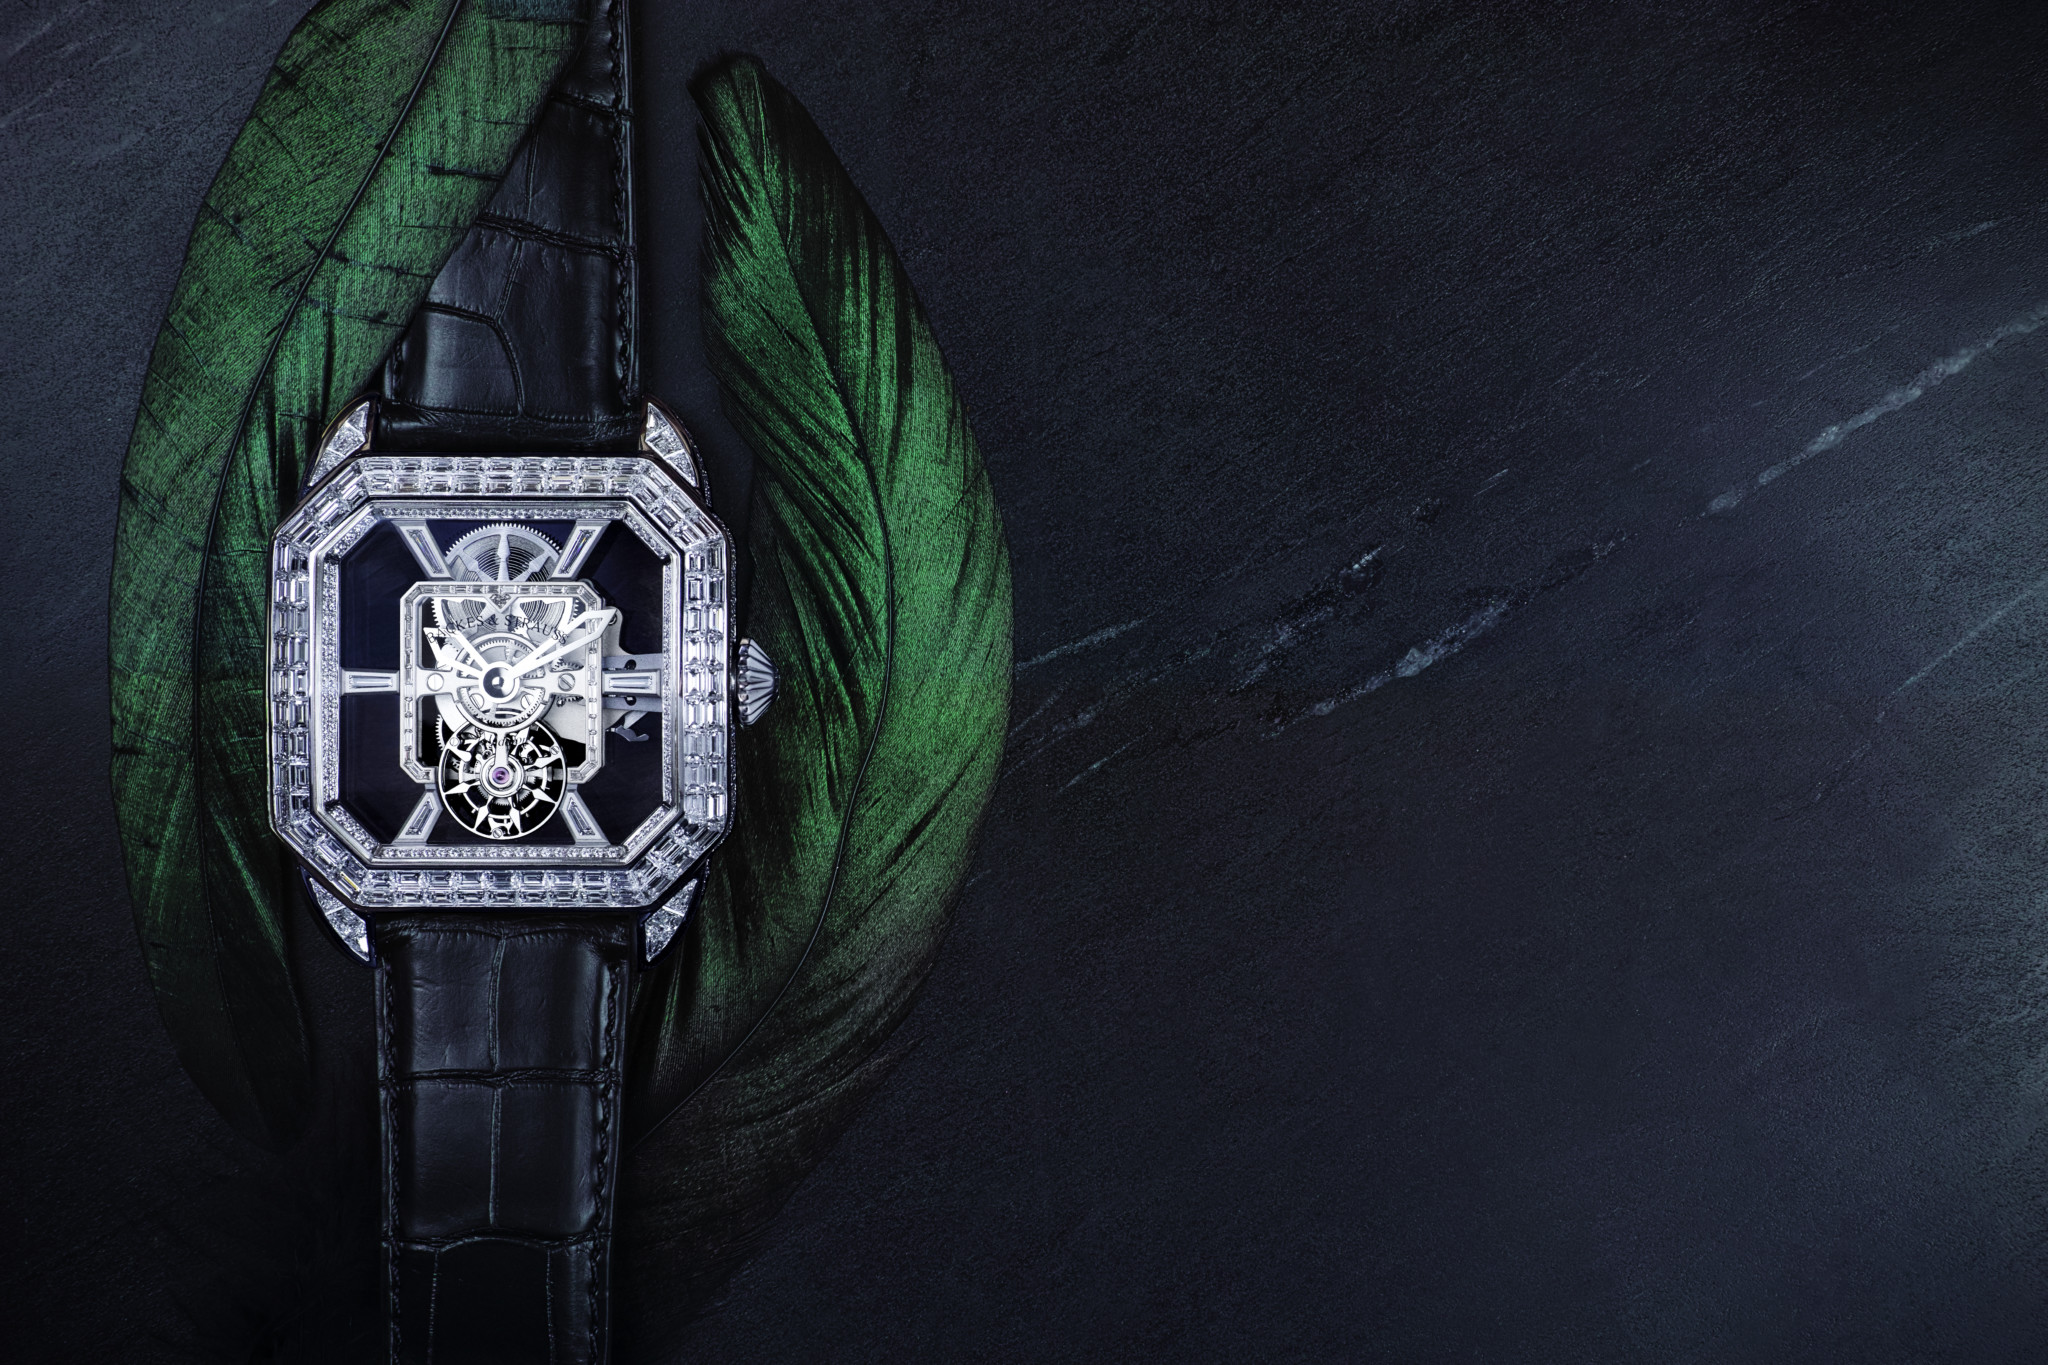 Backes & Strauss The Berkeley Emperor Brilliant Tourbillon